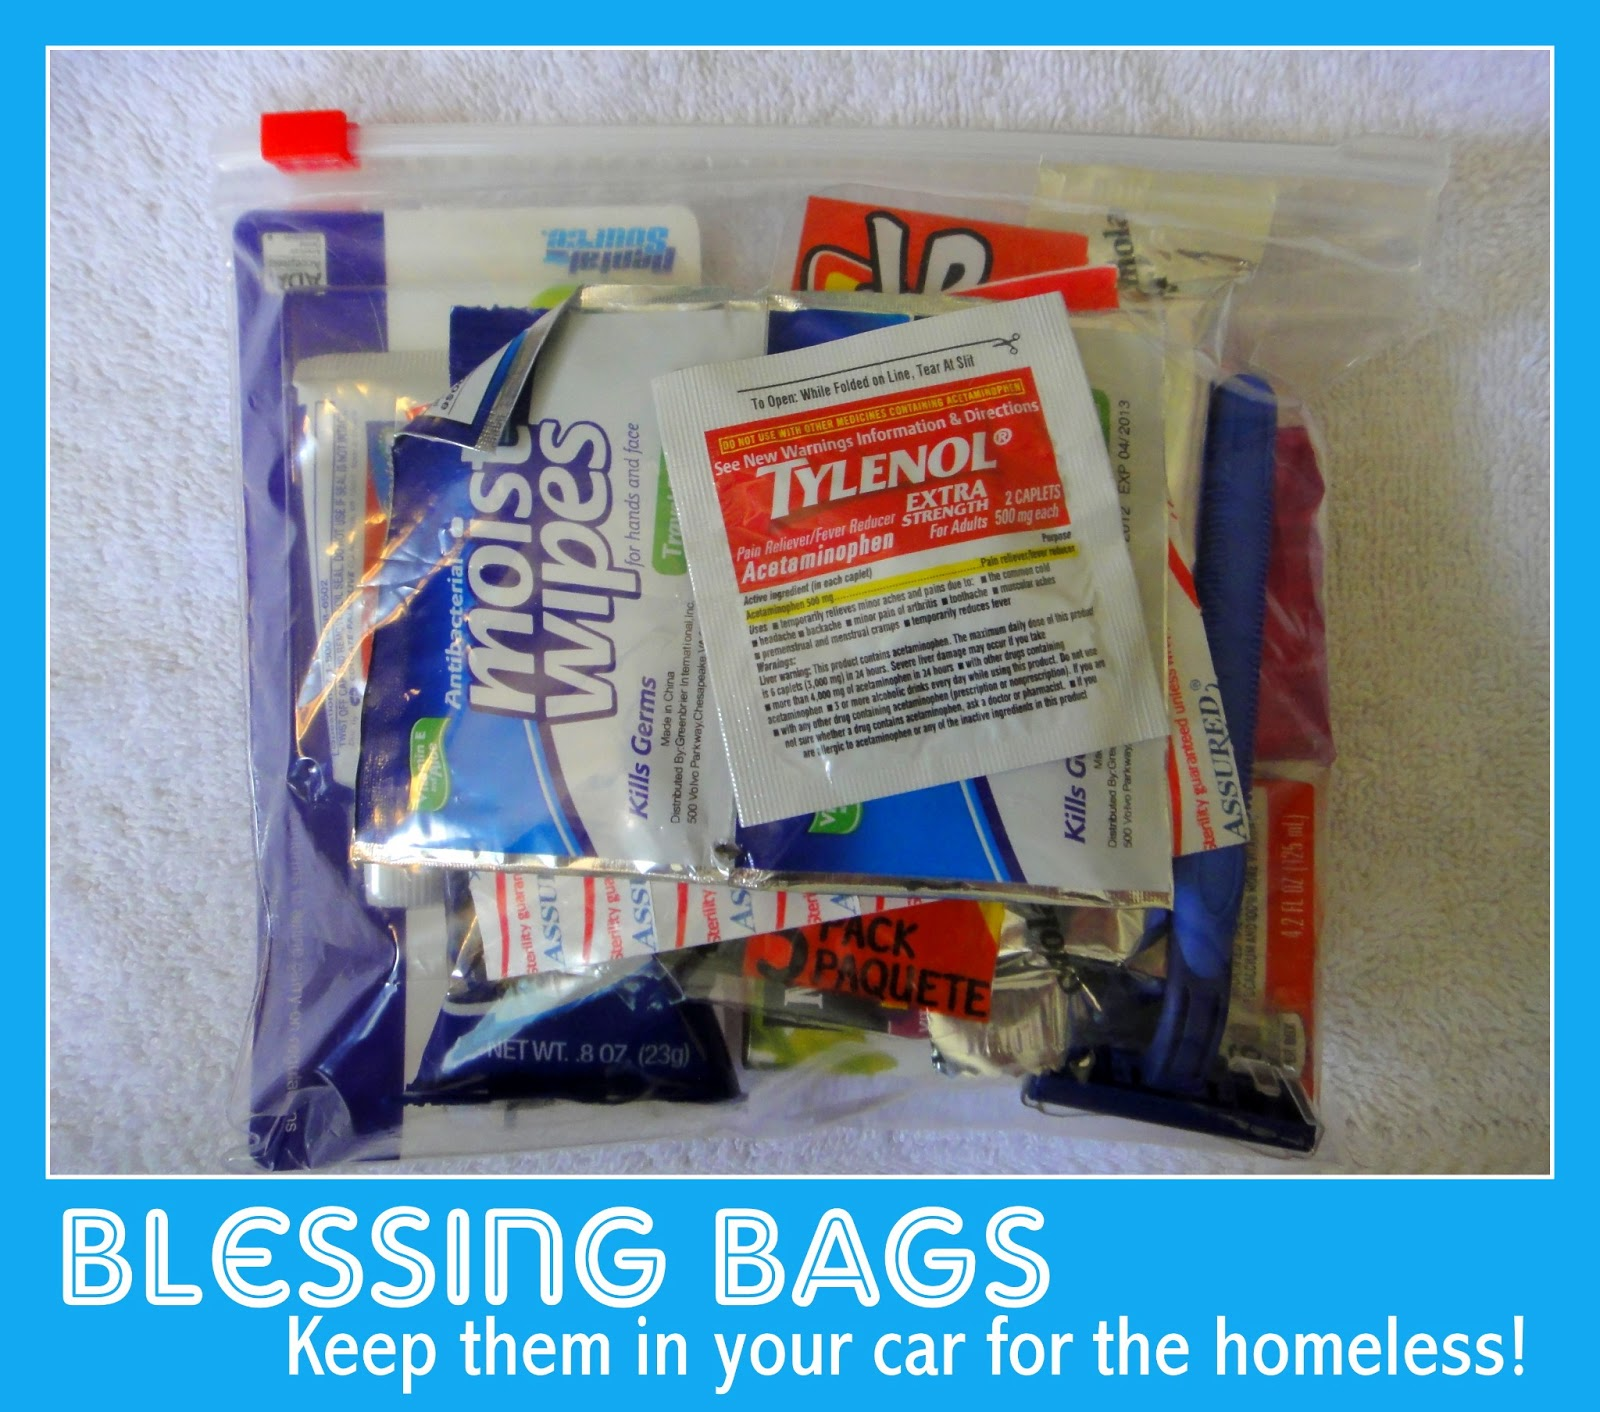 Christmas gift ideas for homeless